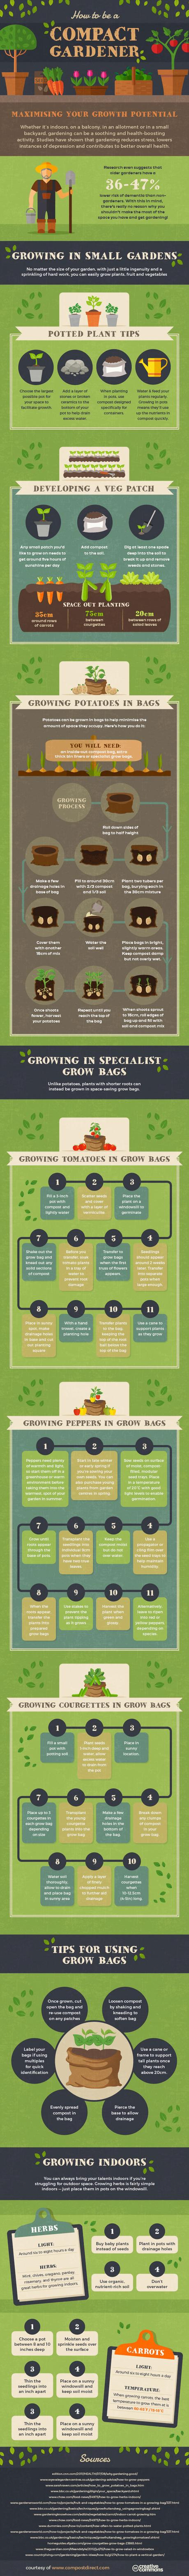 compact gardening infographic